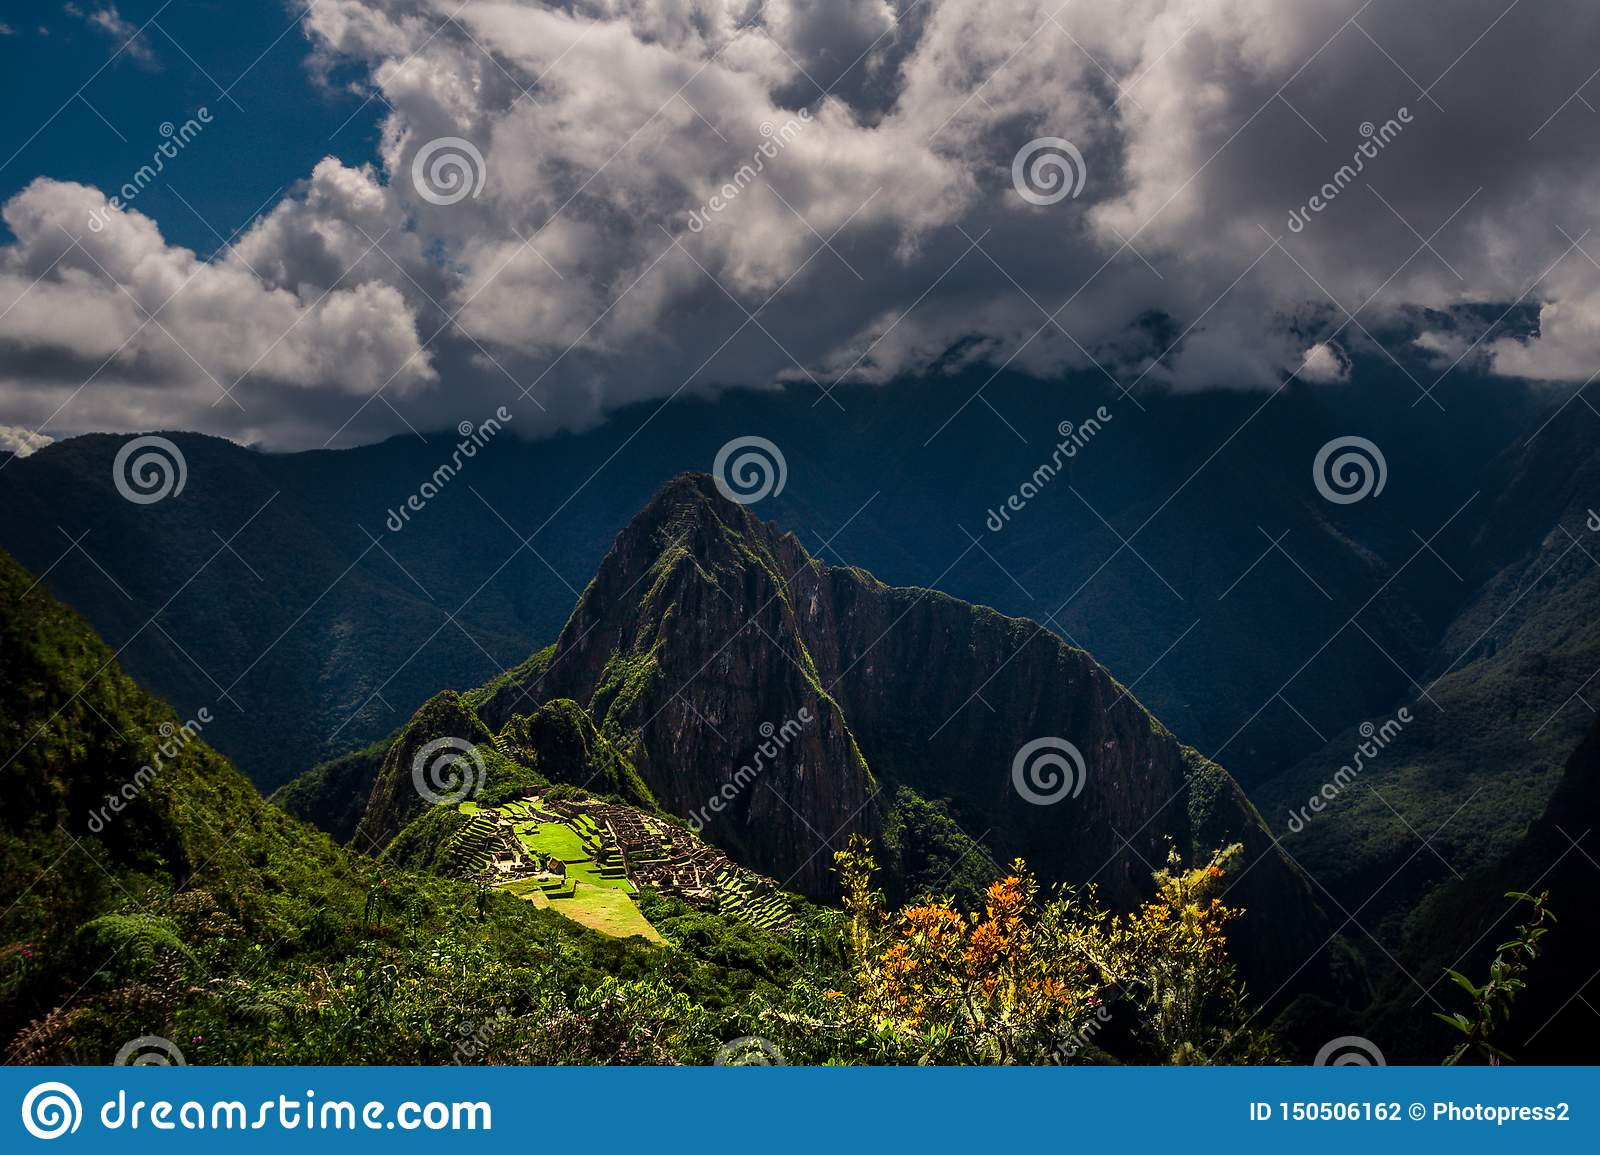 Majestic aerial view on the Machu Picchu / Huayna Picchu mountain